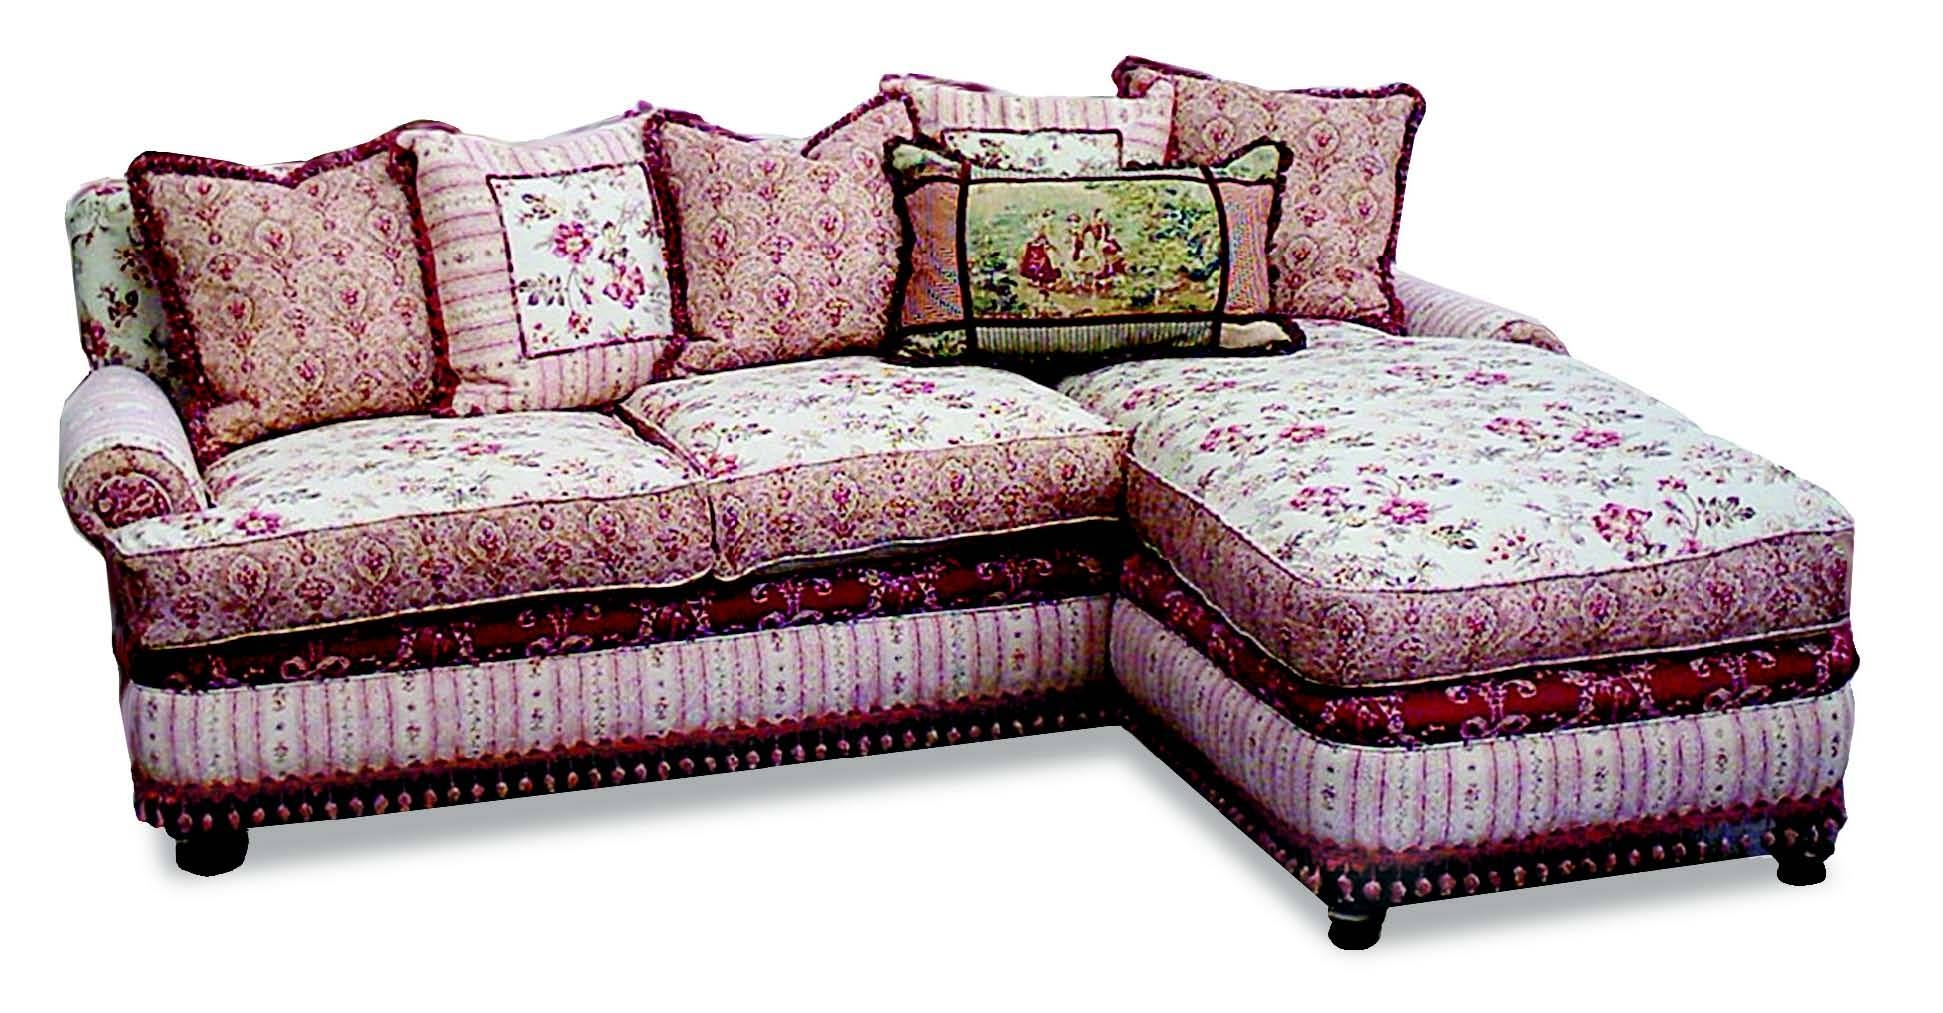 30 inspirations of shabby chic sofa. Black Bedroom Furniture Sets. Home Design Ideas